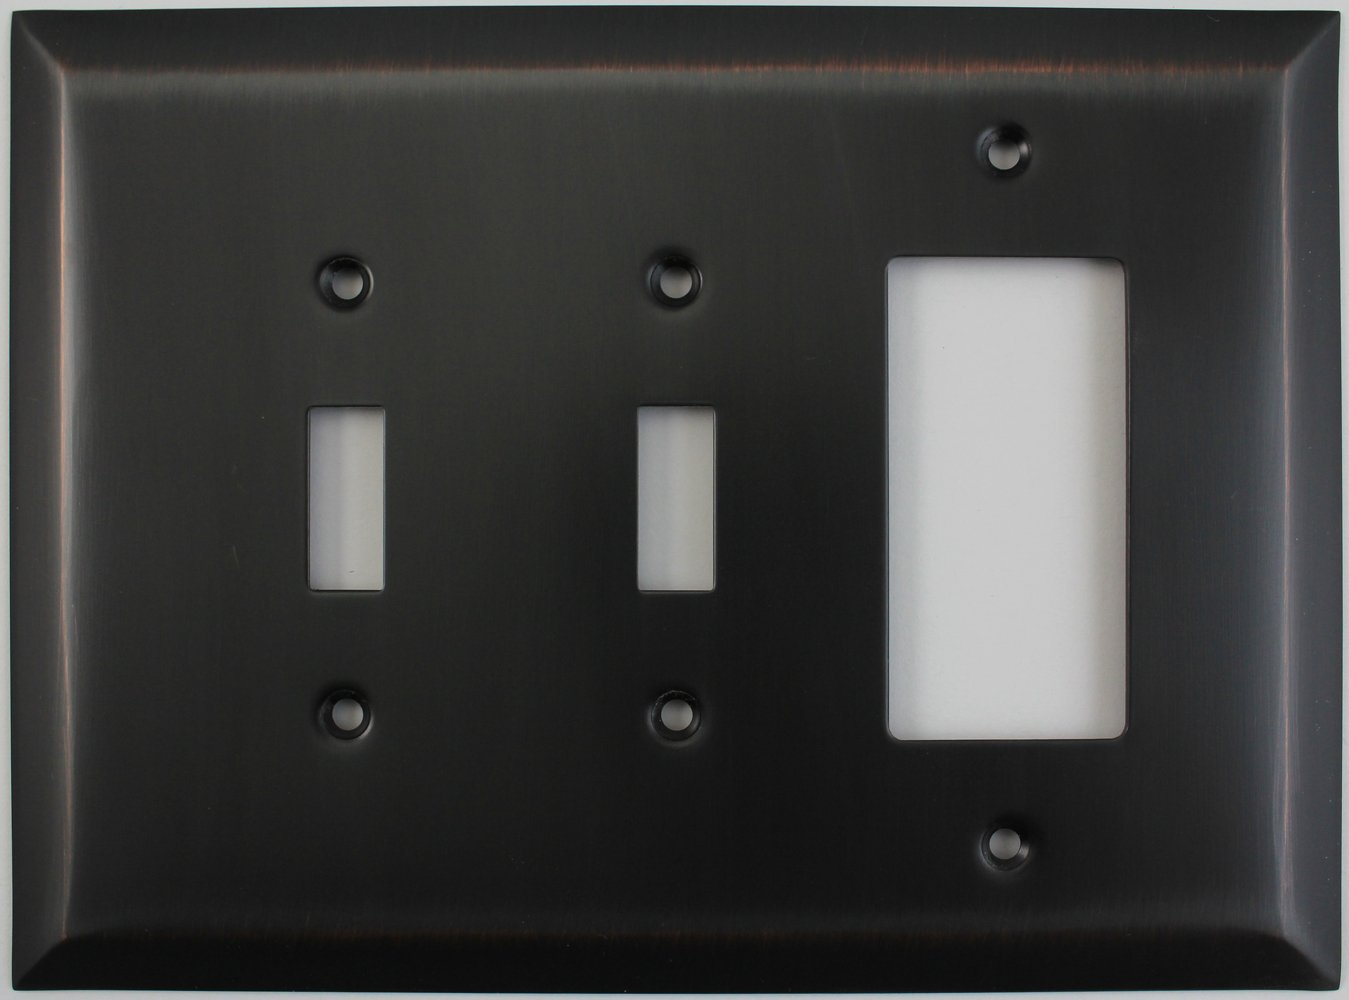 Jumbo Stamped Oil Rubbed Bronze Three Gang Combo Wall Plate - Two Toggle Light Switches One GFI/Rocker Outlet by Classic Accents